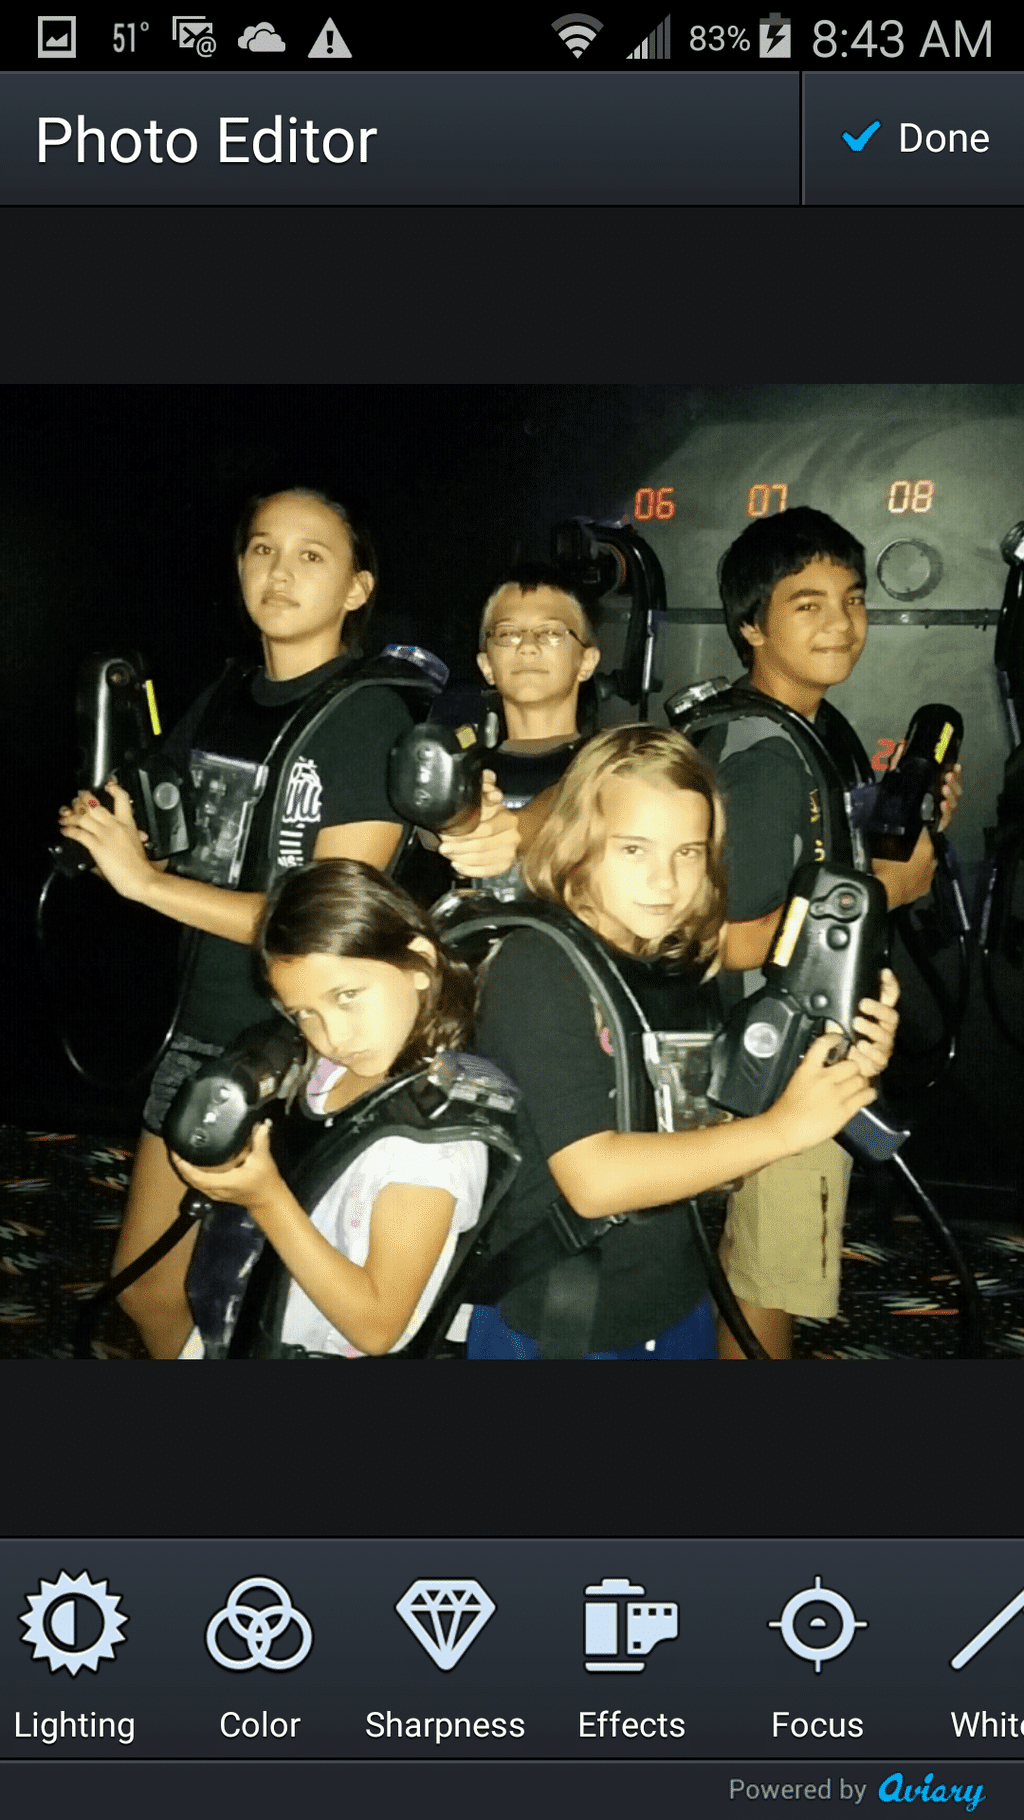 Home screen of kids playing laser tag